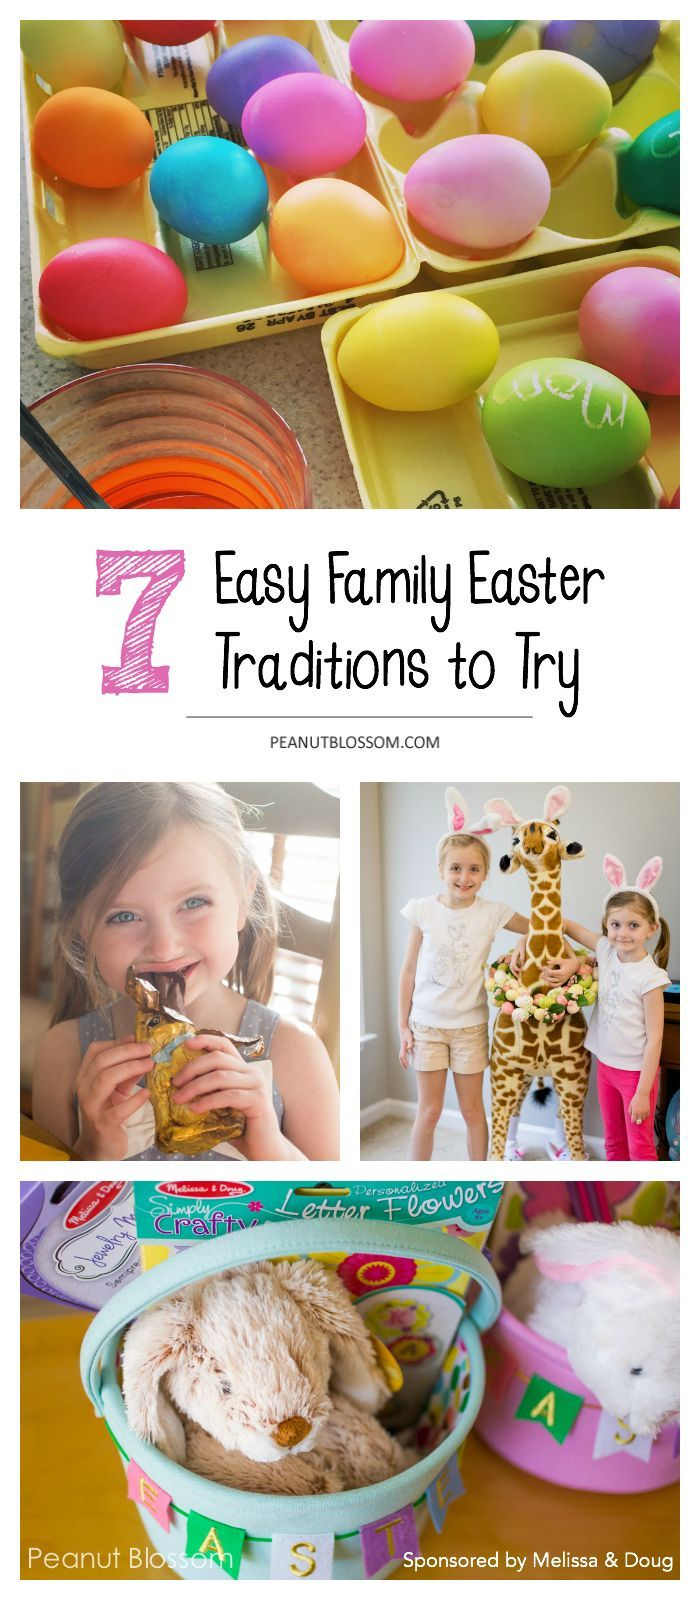 7 easy family Easter traditions to try with your kids this year. Love these sweet and simple Easter ideas. What a great way to make the holiday memorable for the kids.